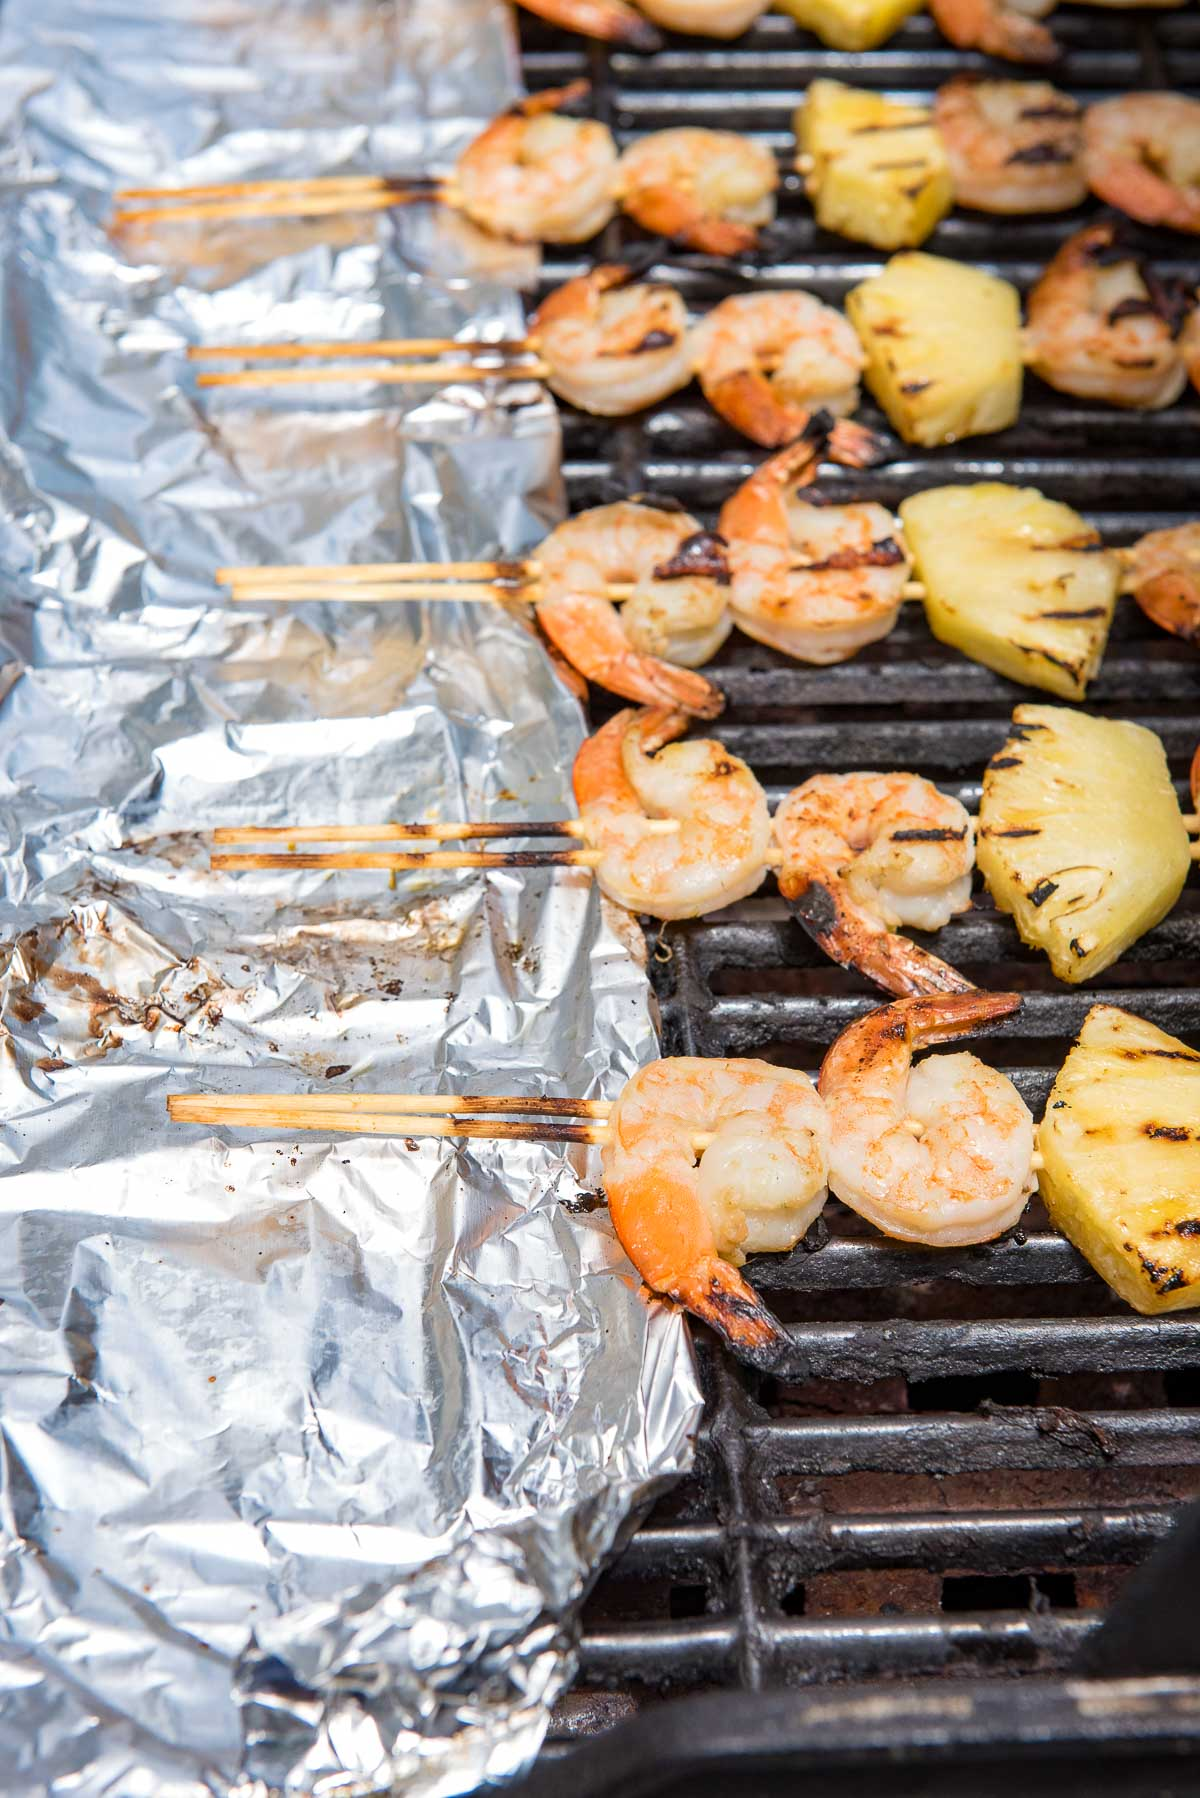 grill with shrimp skewers on grill